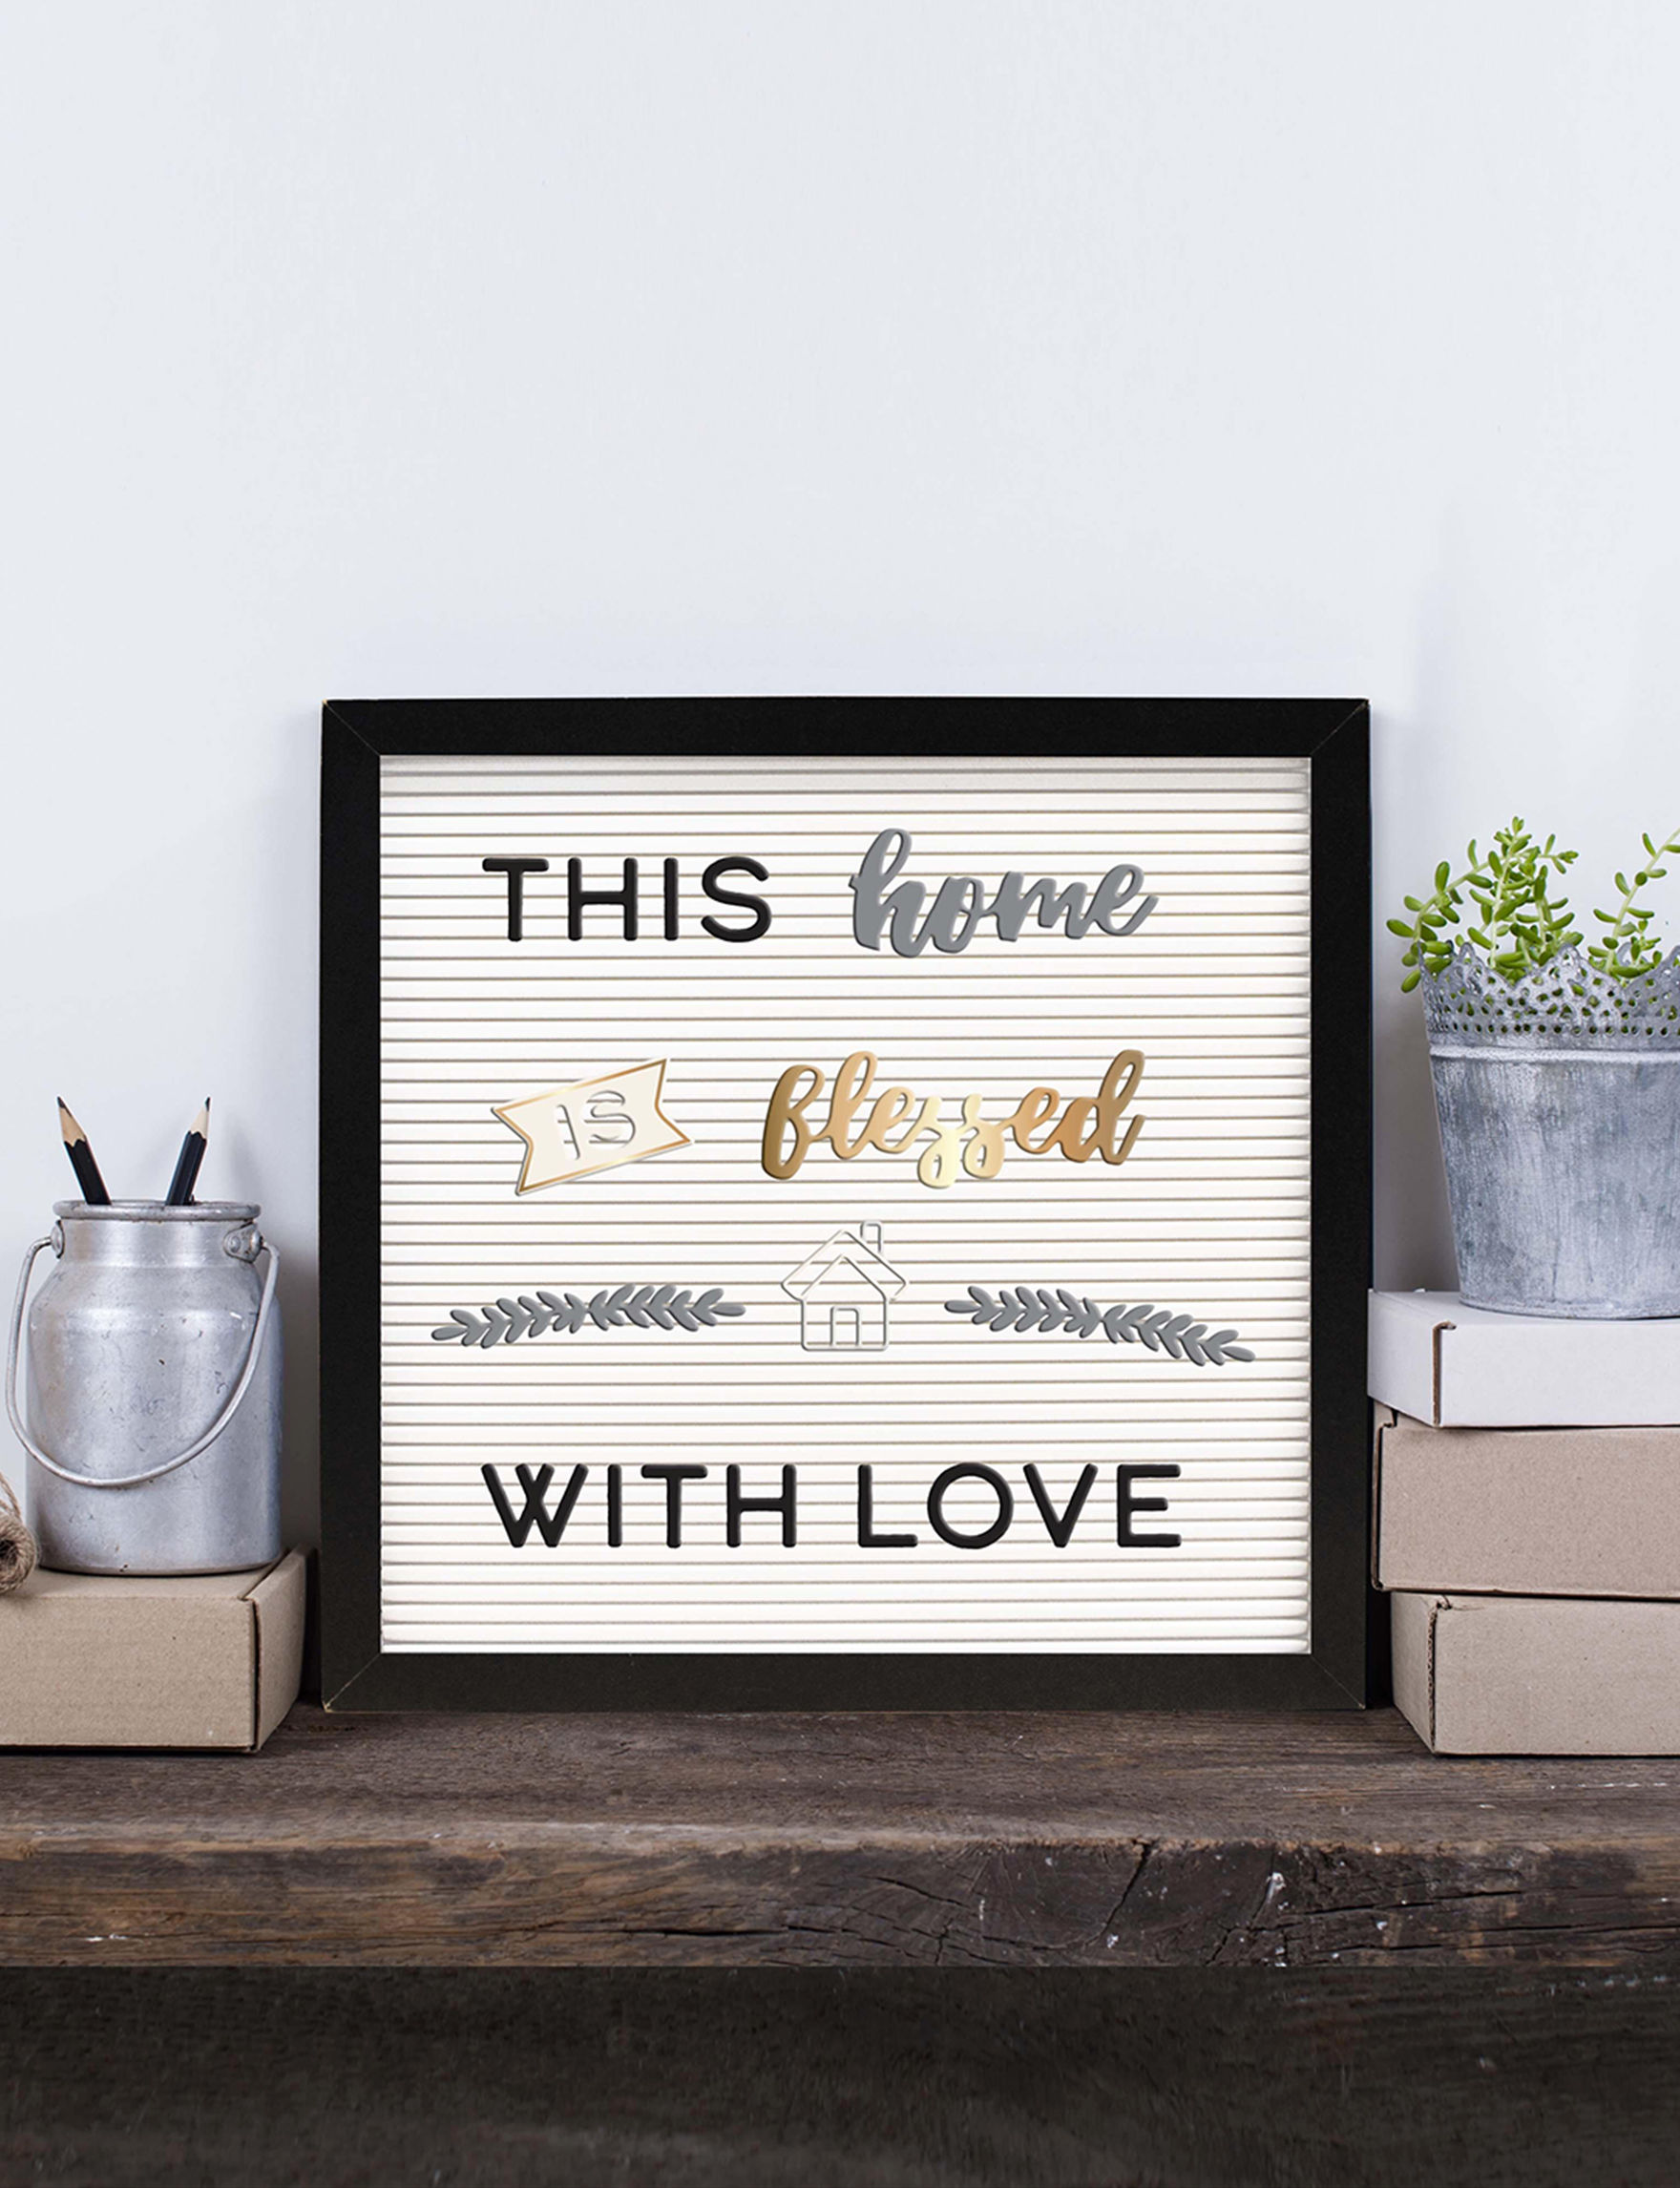 New View  Message Boards Home Accents Wall Decor